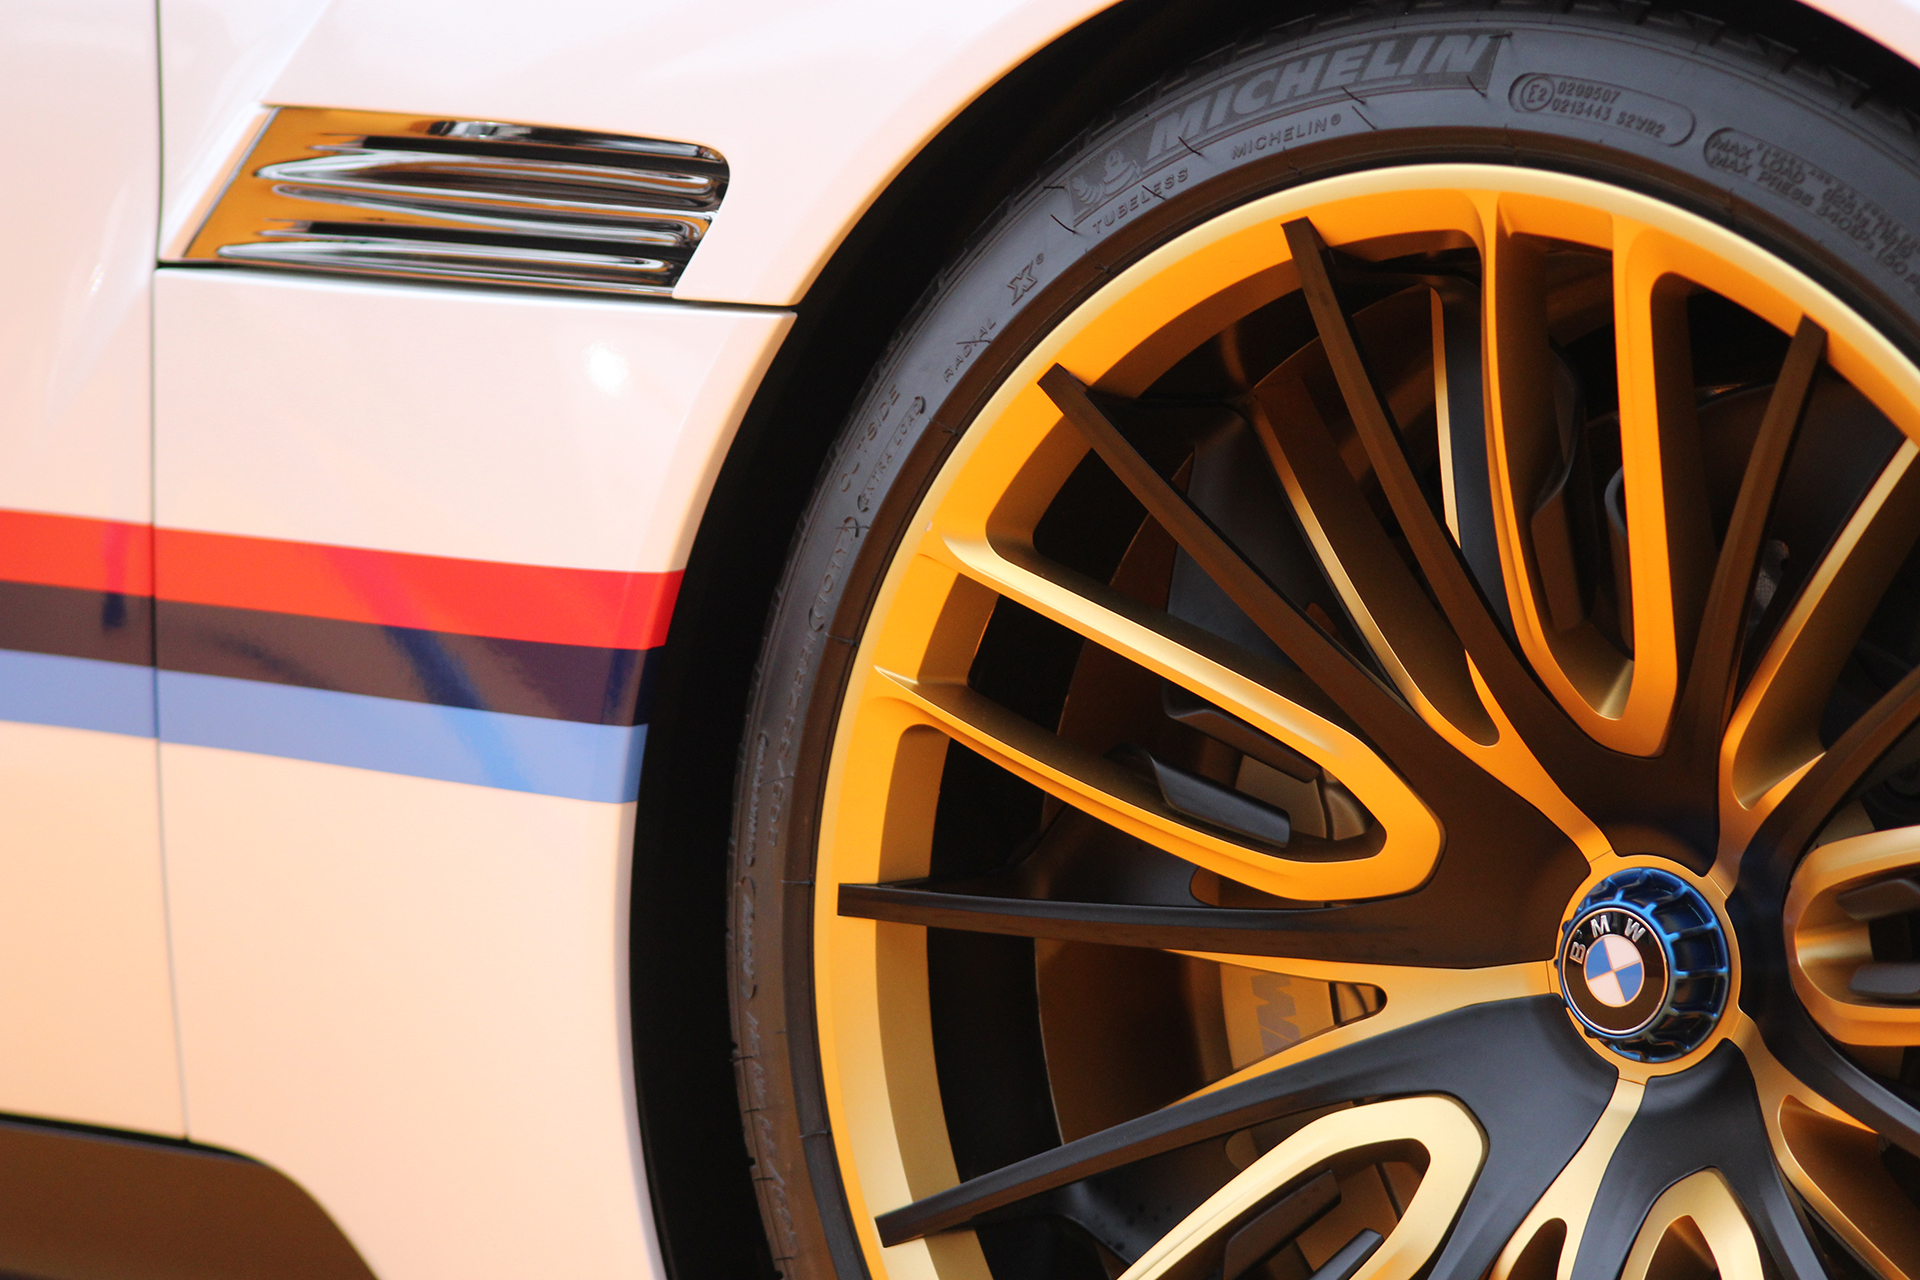 BMW 3.0 CSL Hommage - roue / wheel - Exposition Concept cars 2016 - Arnaud Demasier RS Photographie